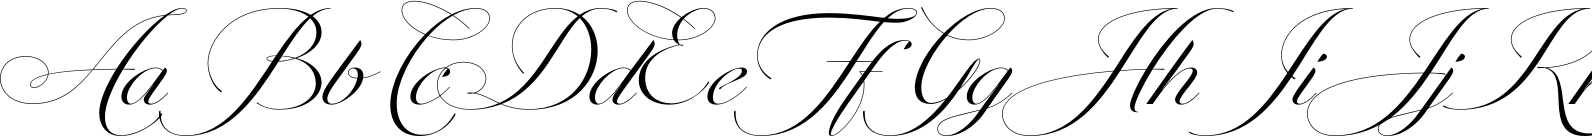 Penna Connected Font